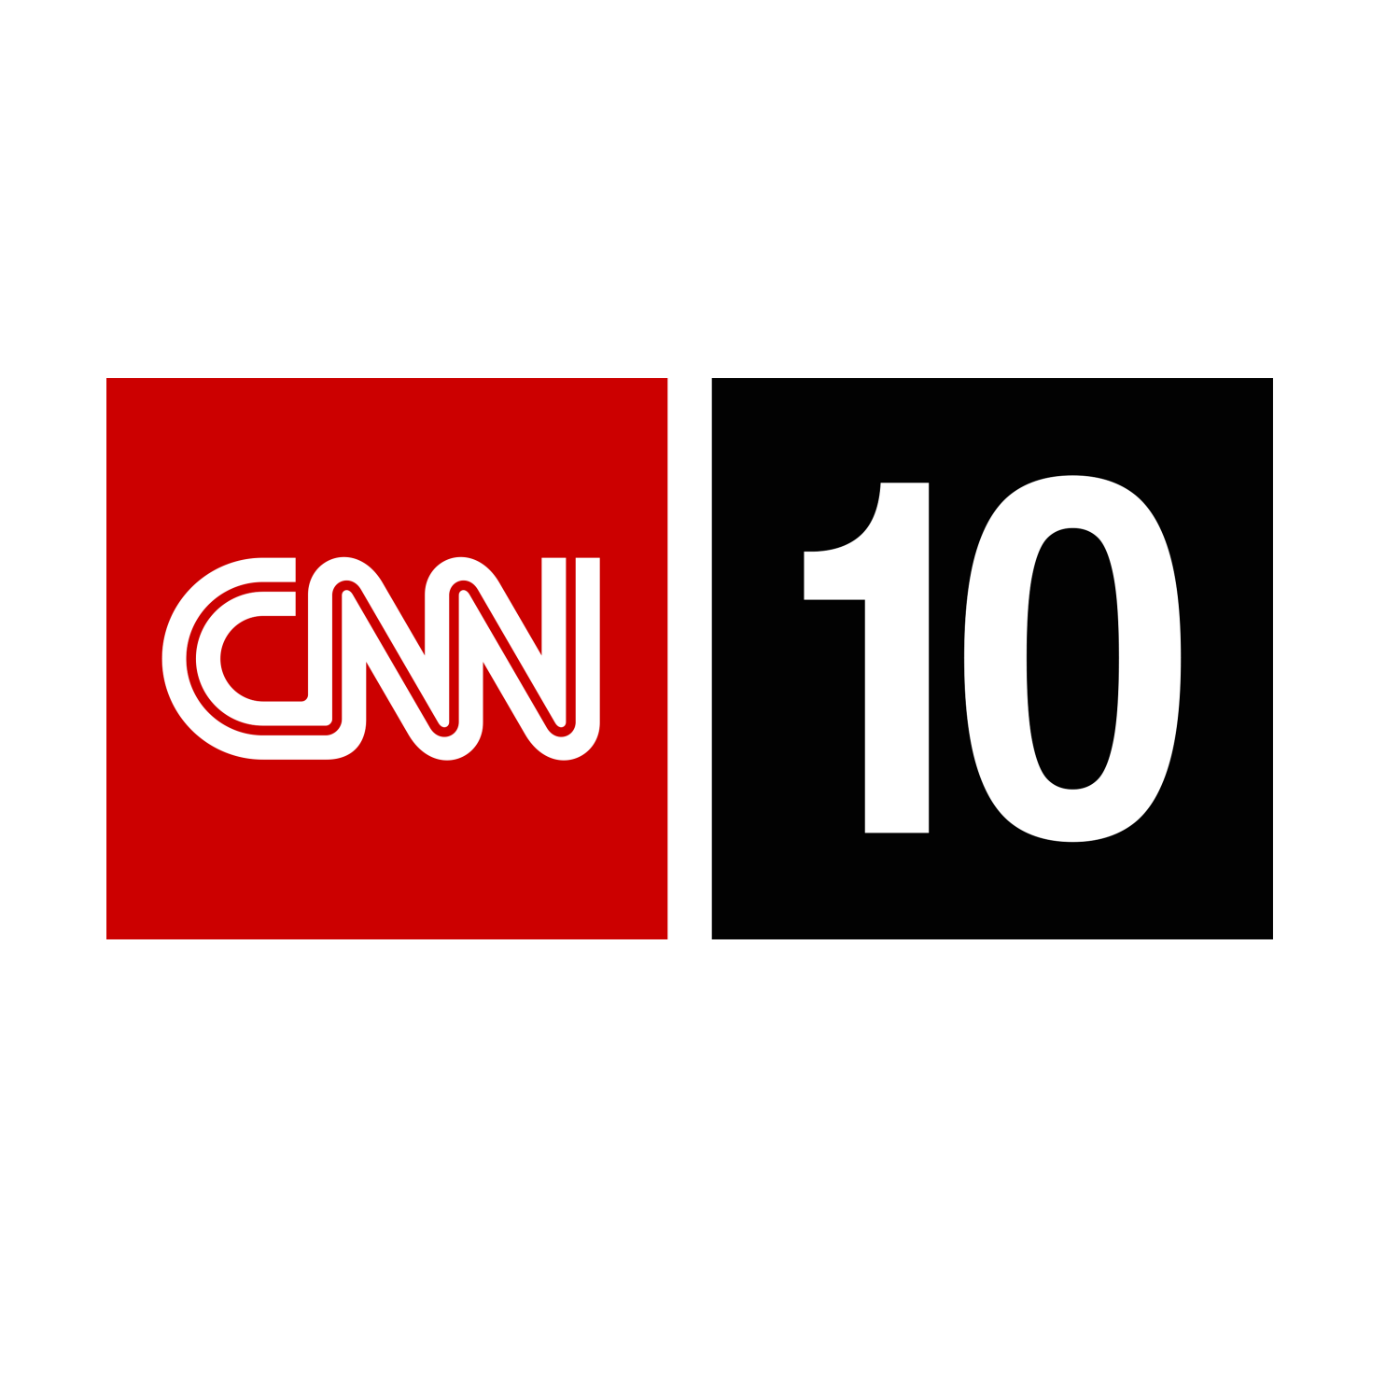 CNN Student News - January 16, 2013